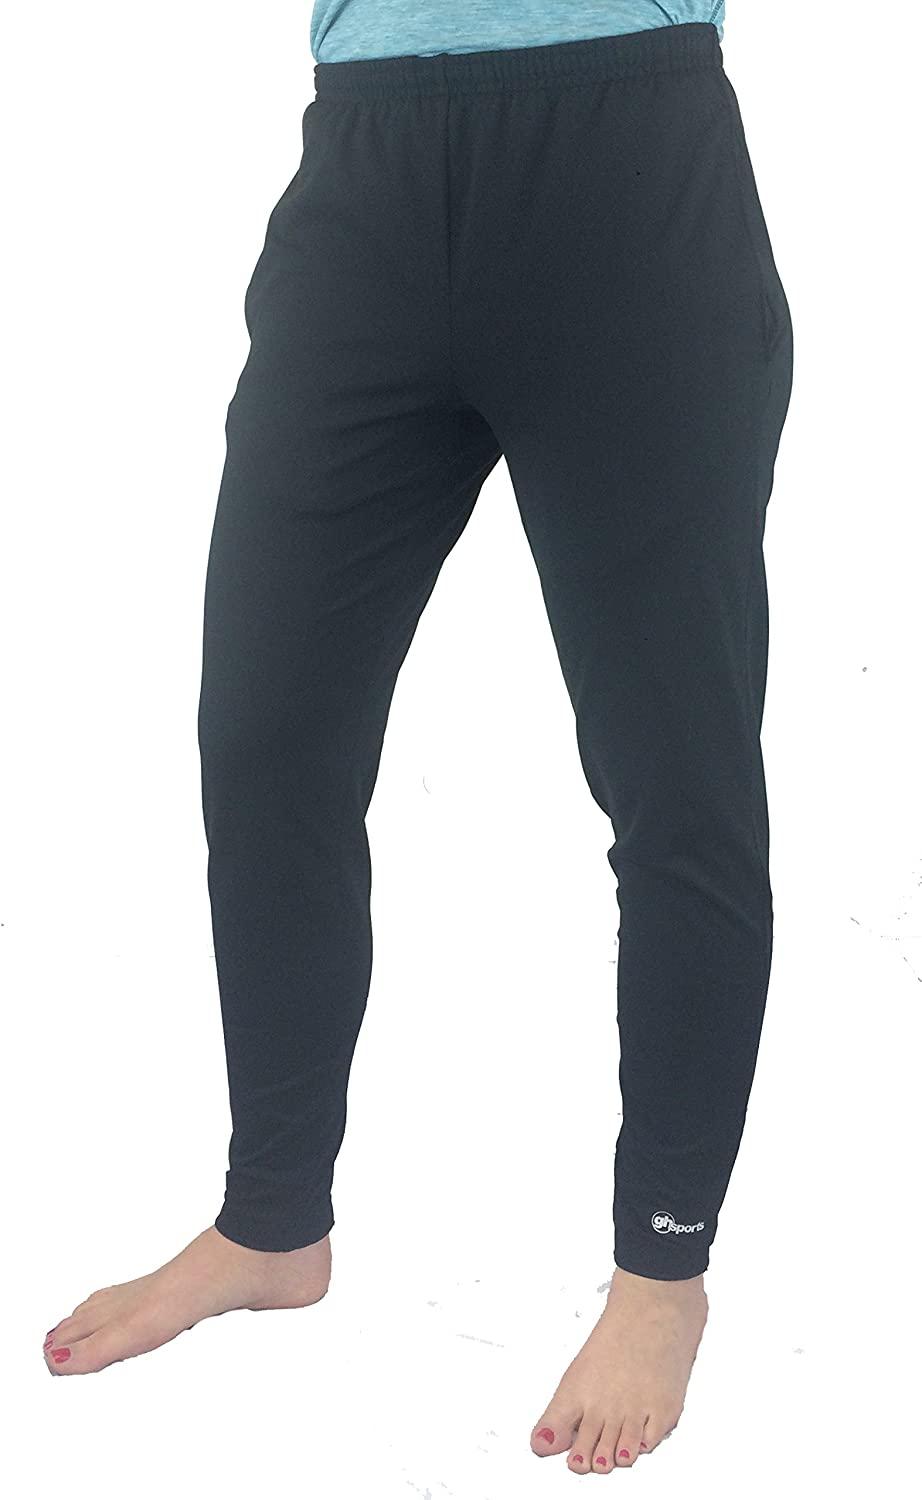 Max 51% OFF GH Sports Women's National products Tights Munich